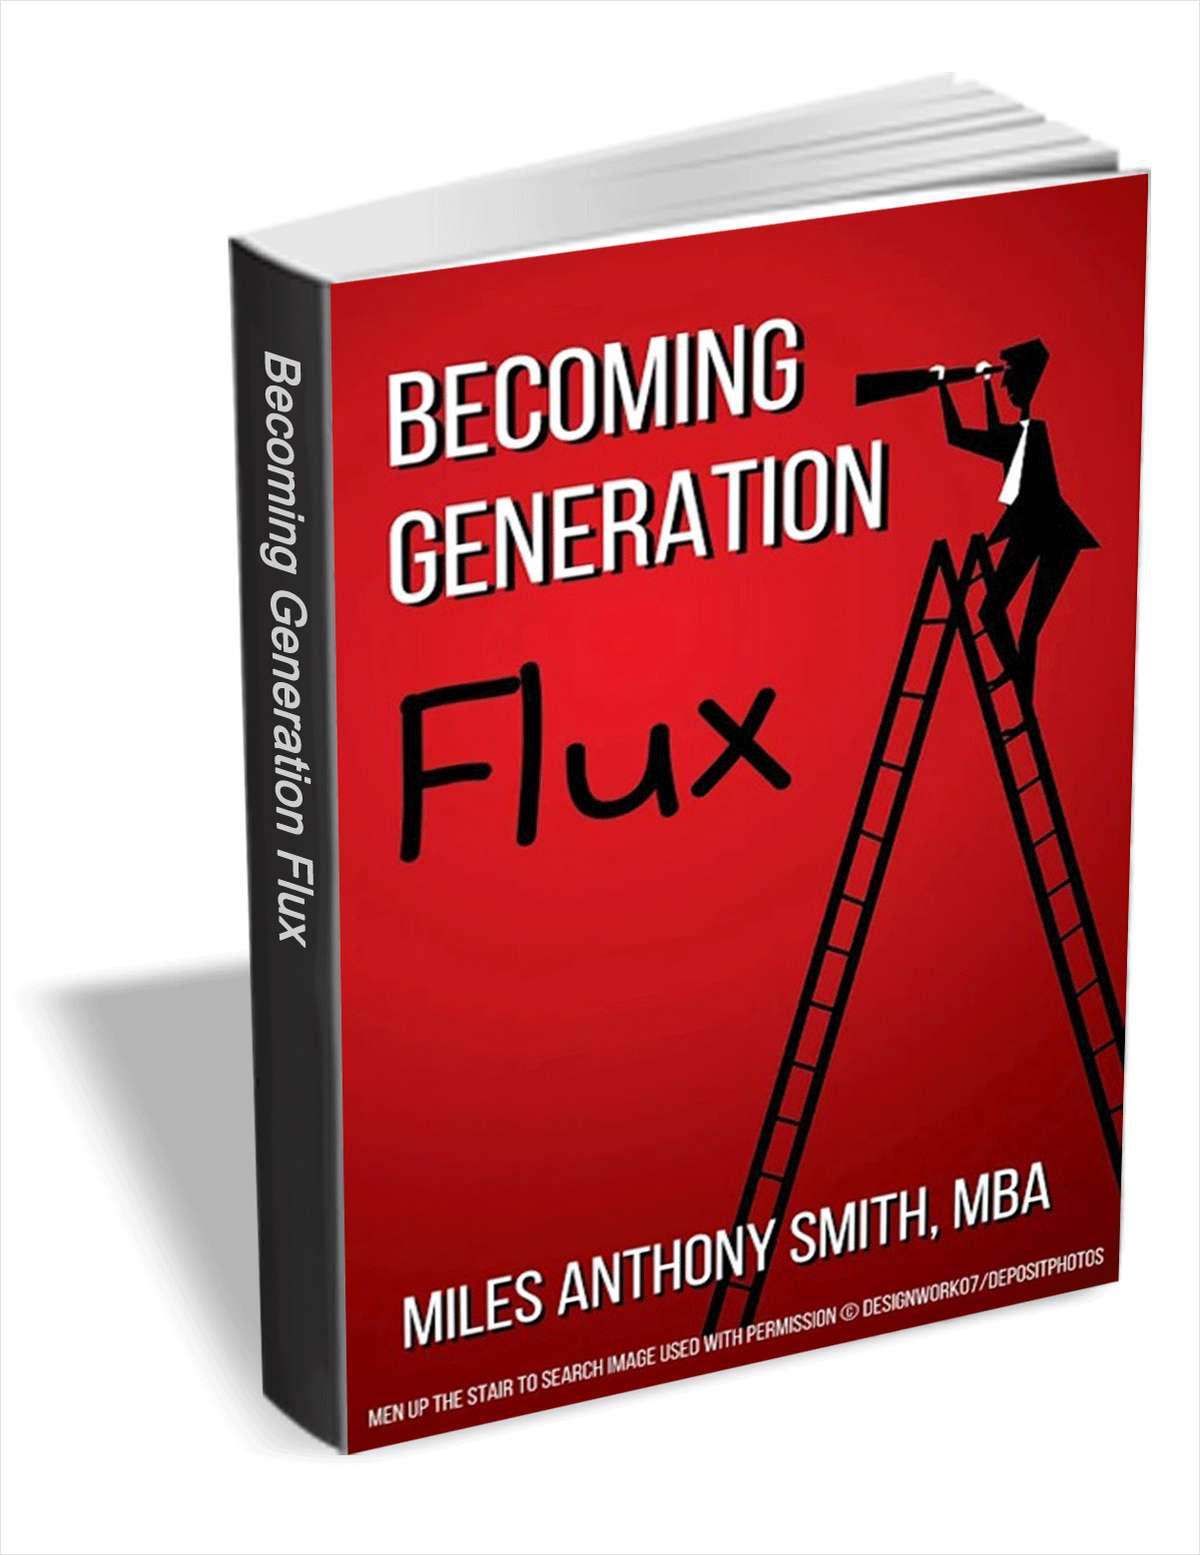 Becoming Generation Flux ($6 Value) Free